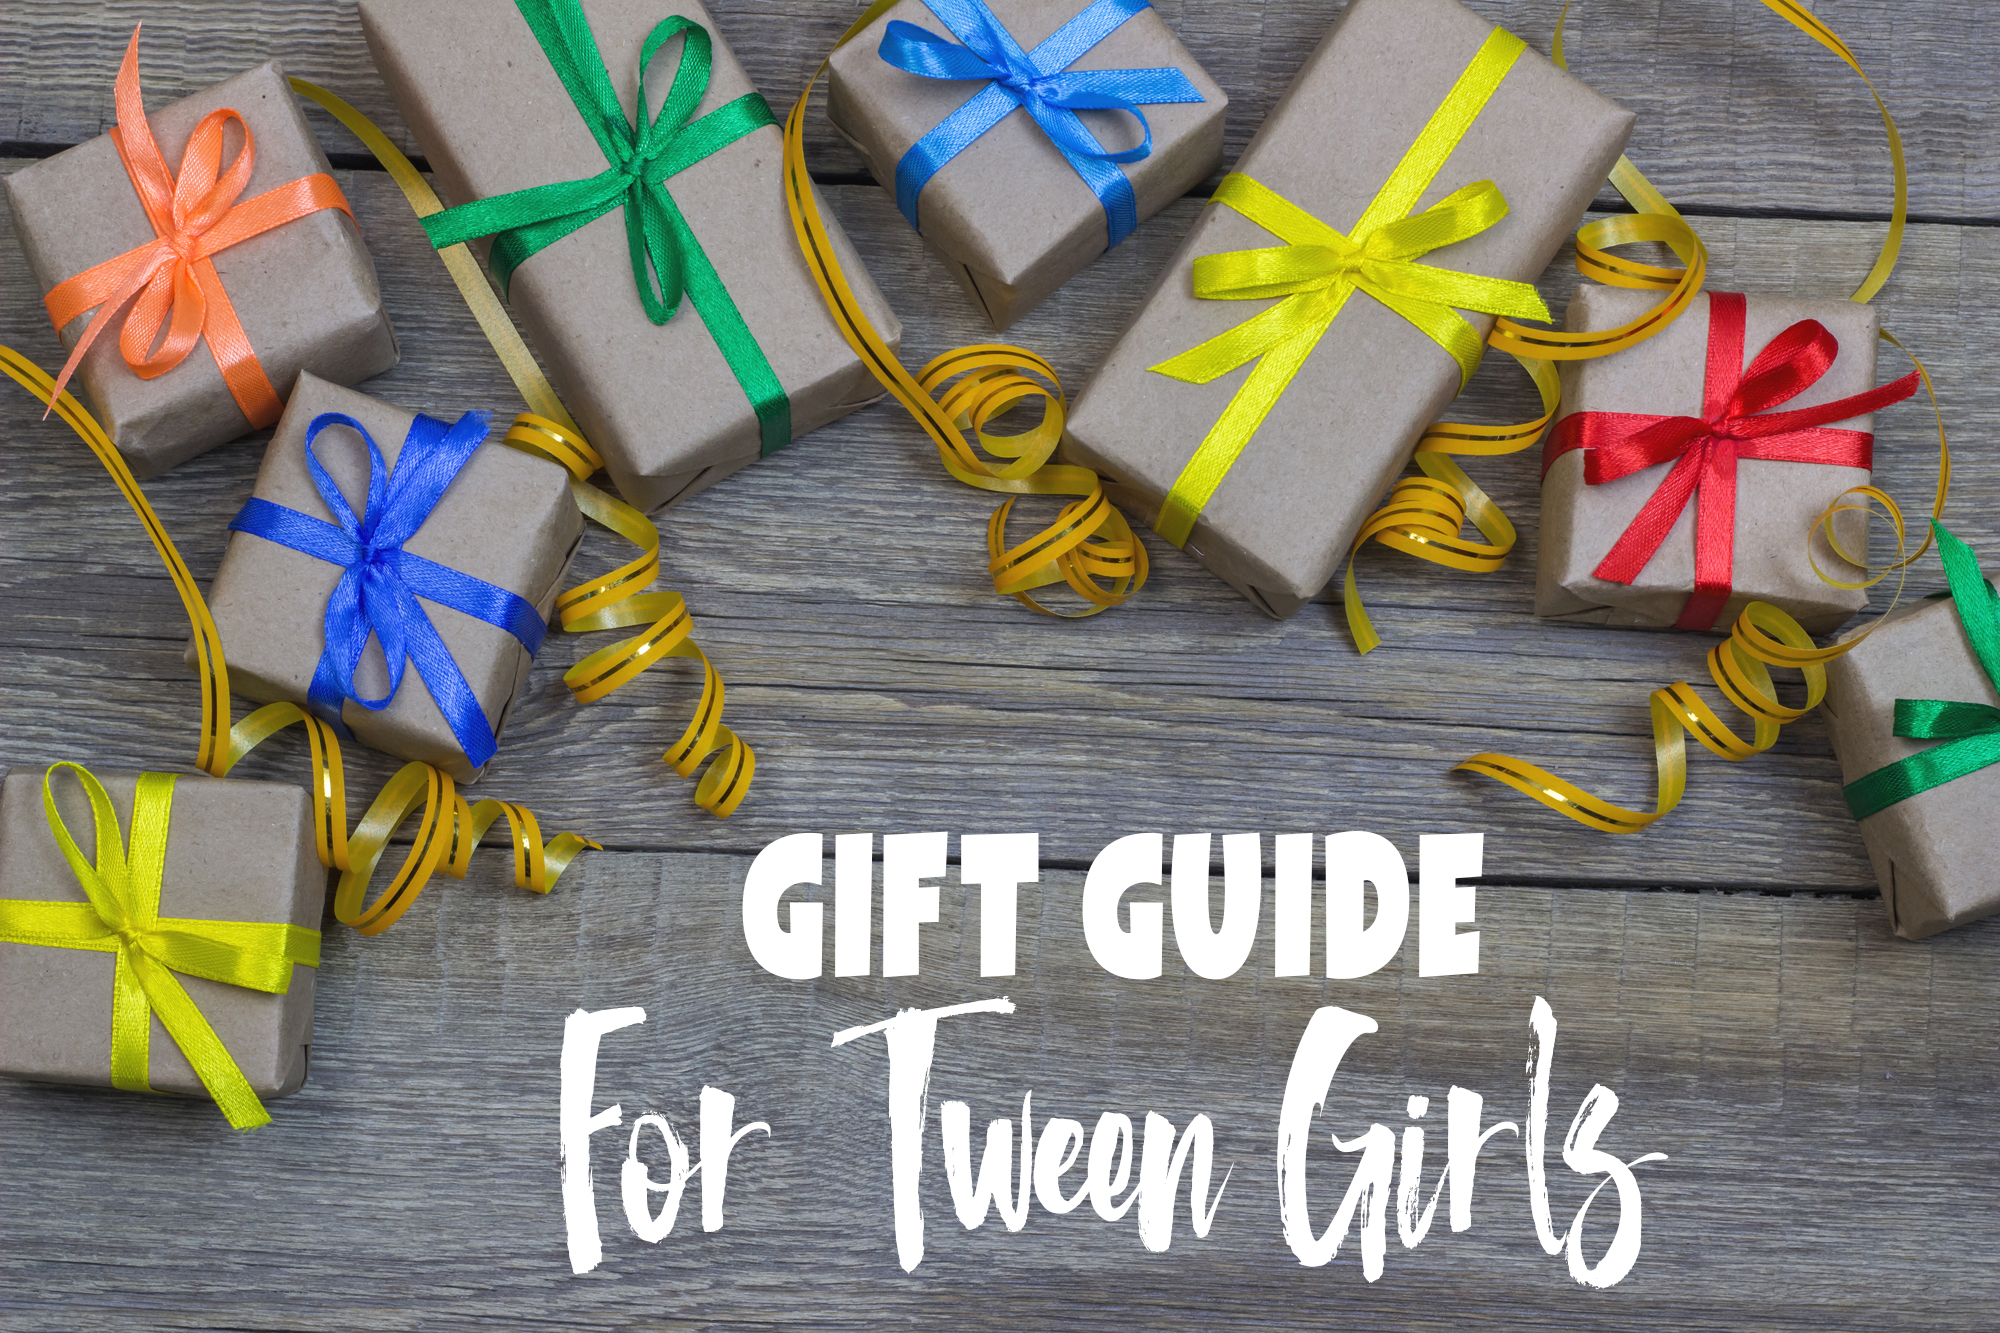 Gift Ideas For Tween Girls 2018 Guide